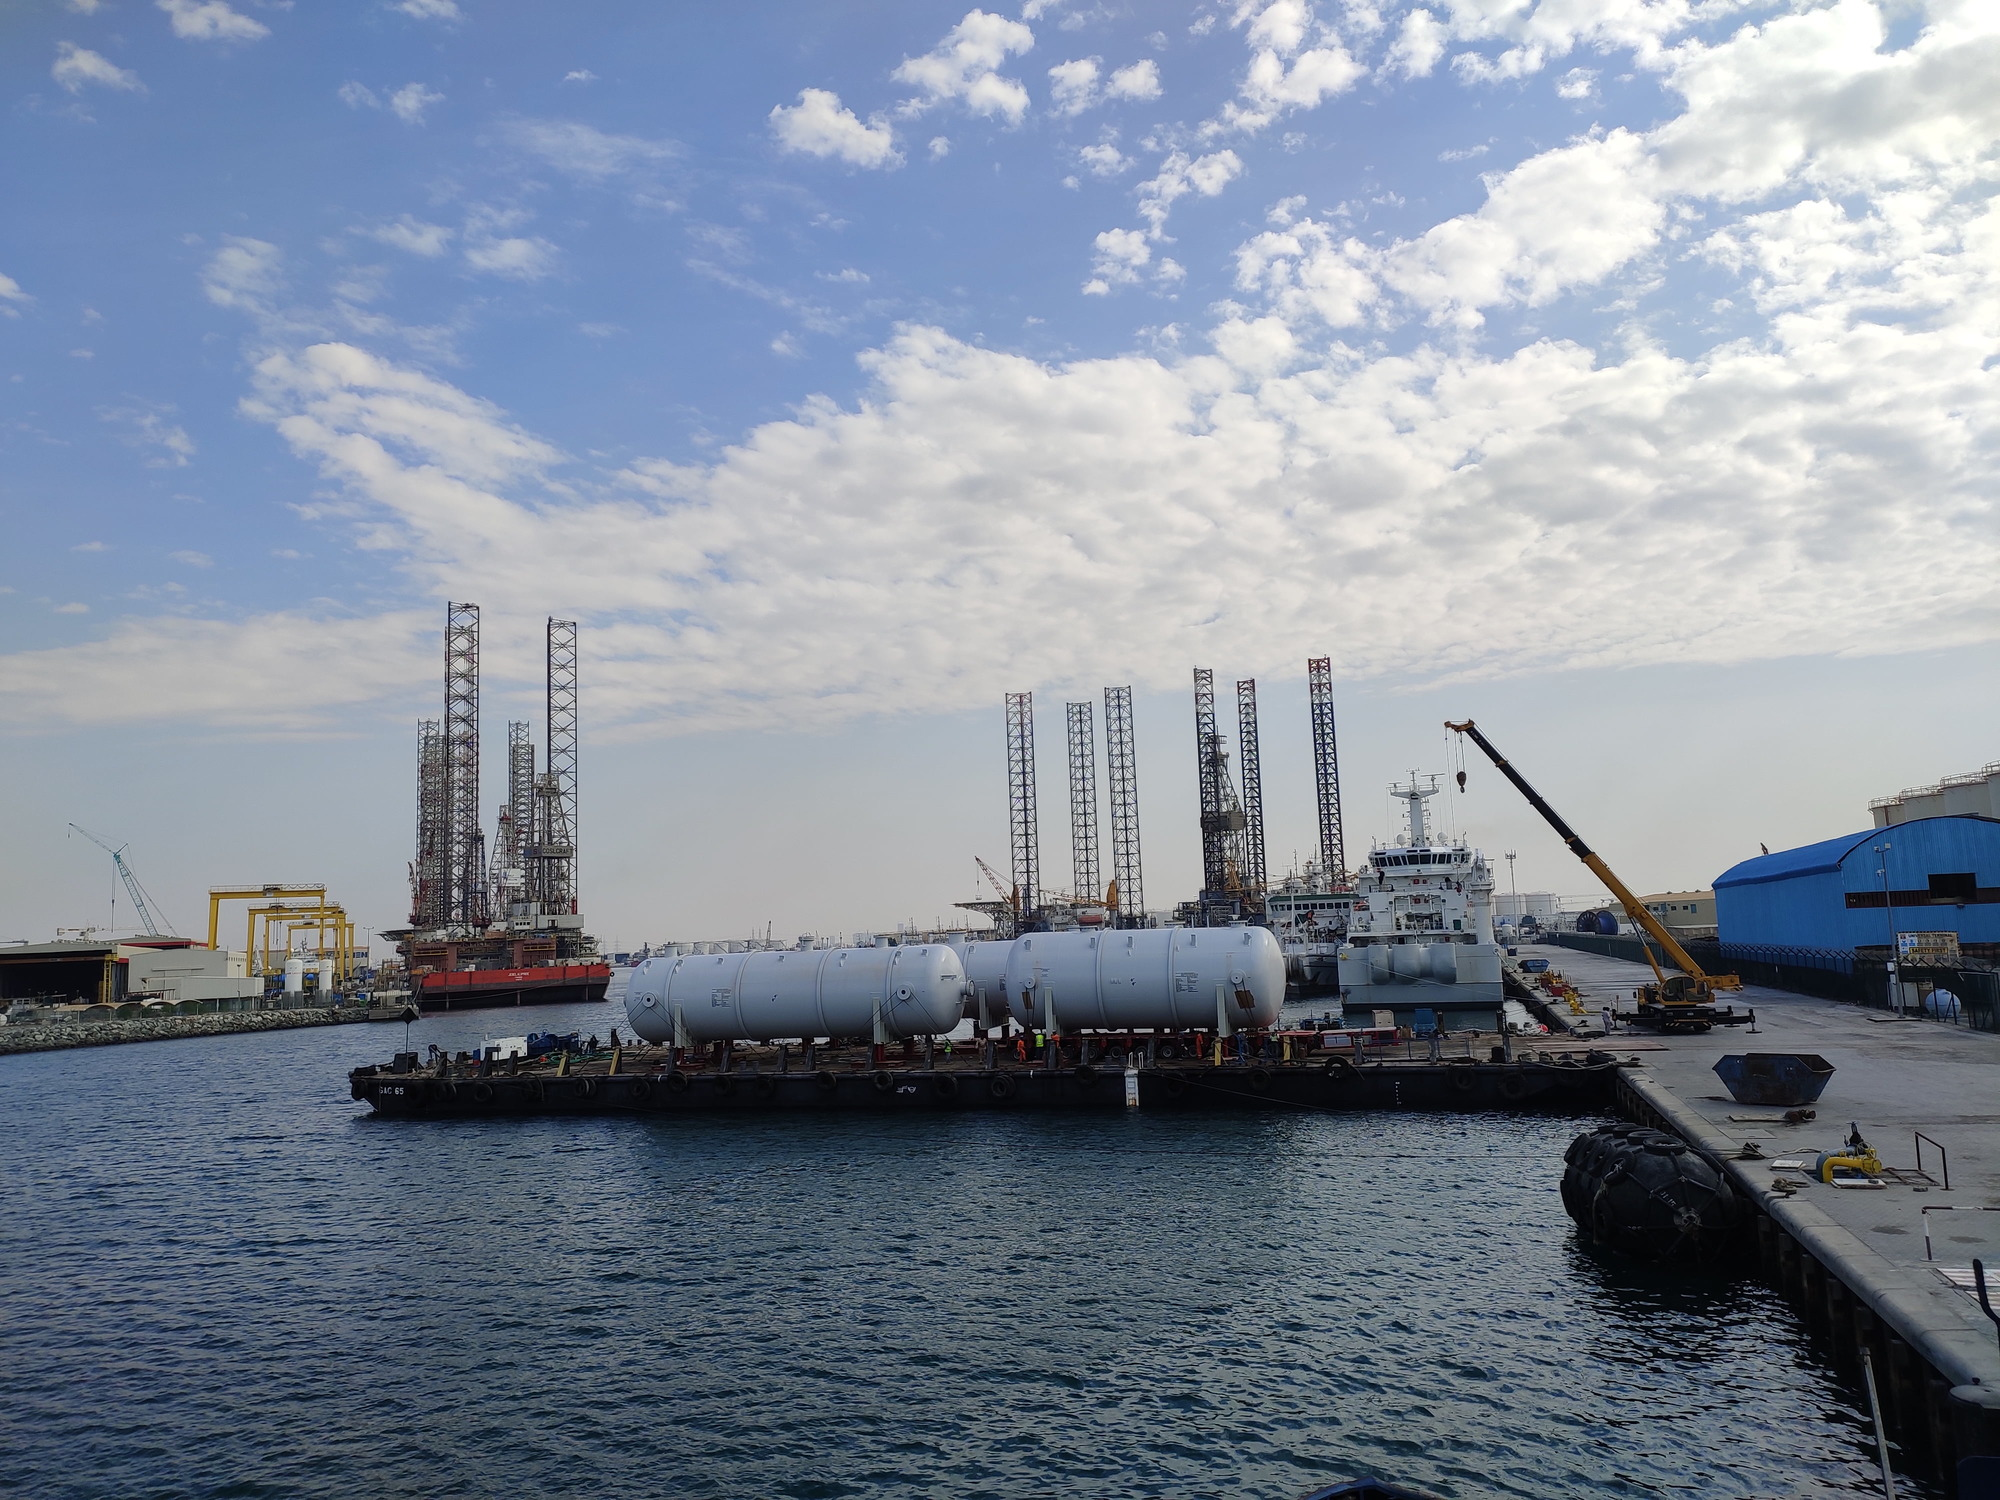 Al Faris transports 19 vessels for a crude-oil production facility in Abu Dhabi